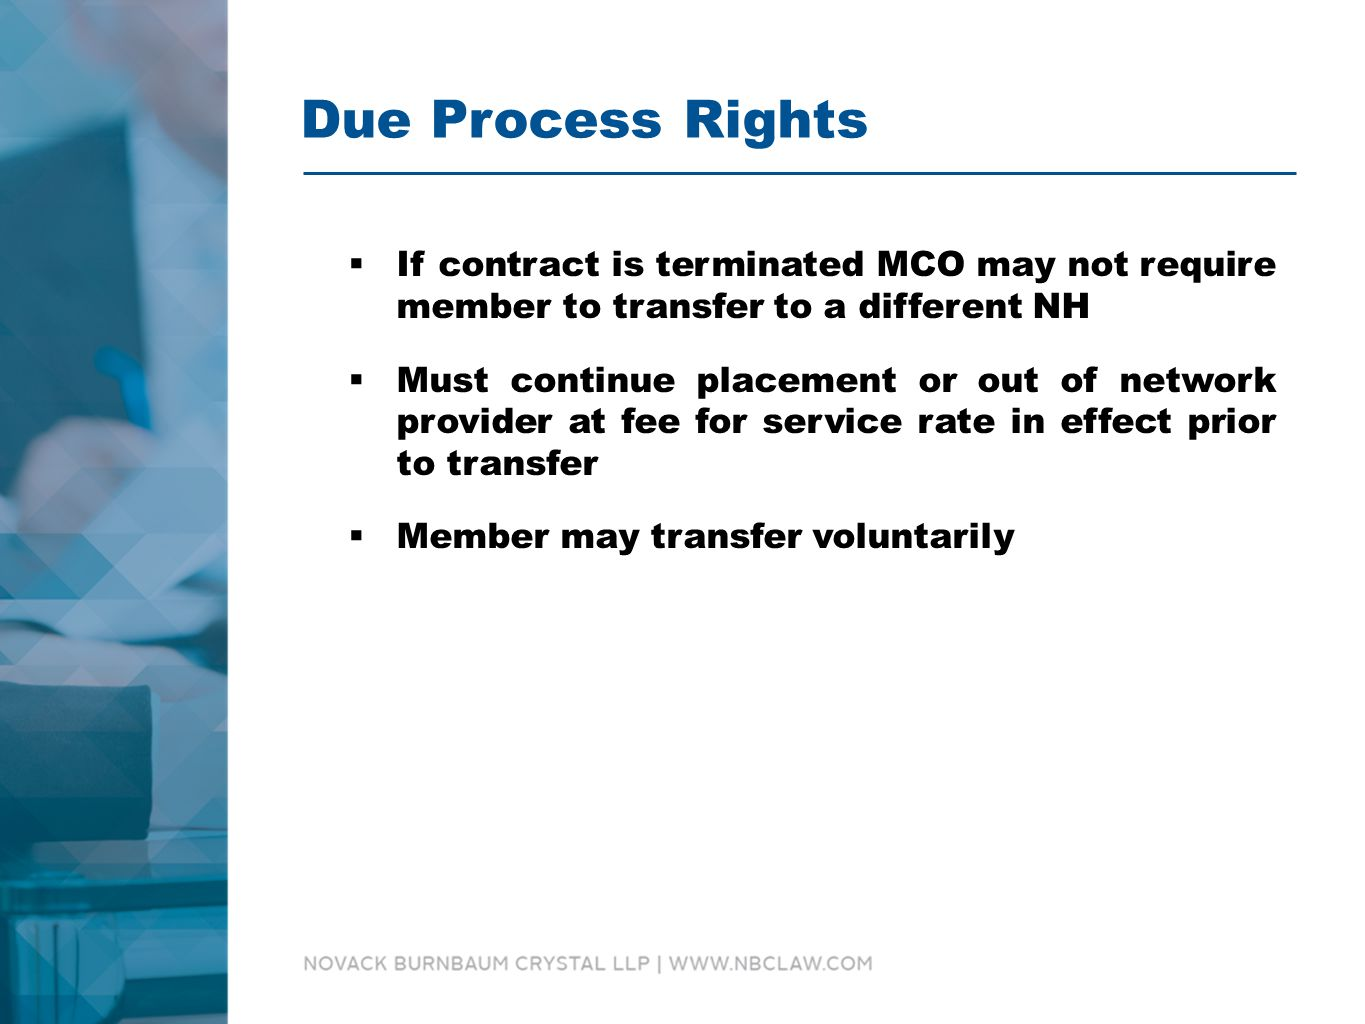 Due Process Rights  If contract is terminated MCO may not require member to transfer to a different NH  Must continue placement or out of network provider at fee for service rate in effect prior to transfer  Member may transfer voluntarily